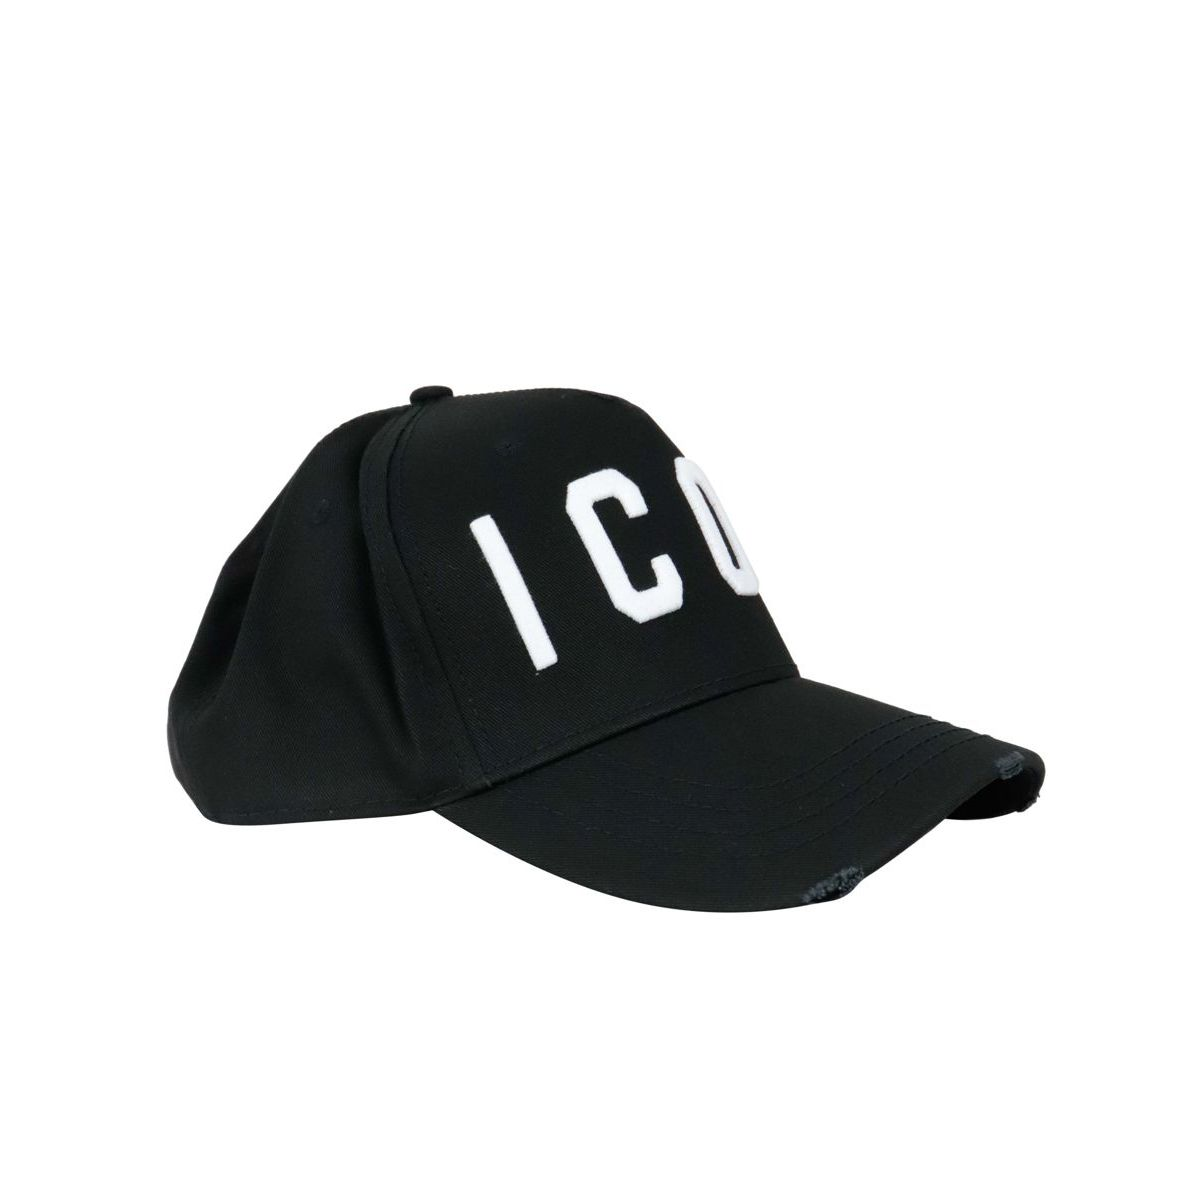 Cotton visor hat with embroidered logo Black Dsquared2